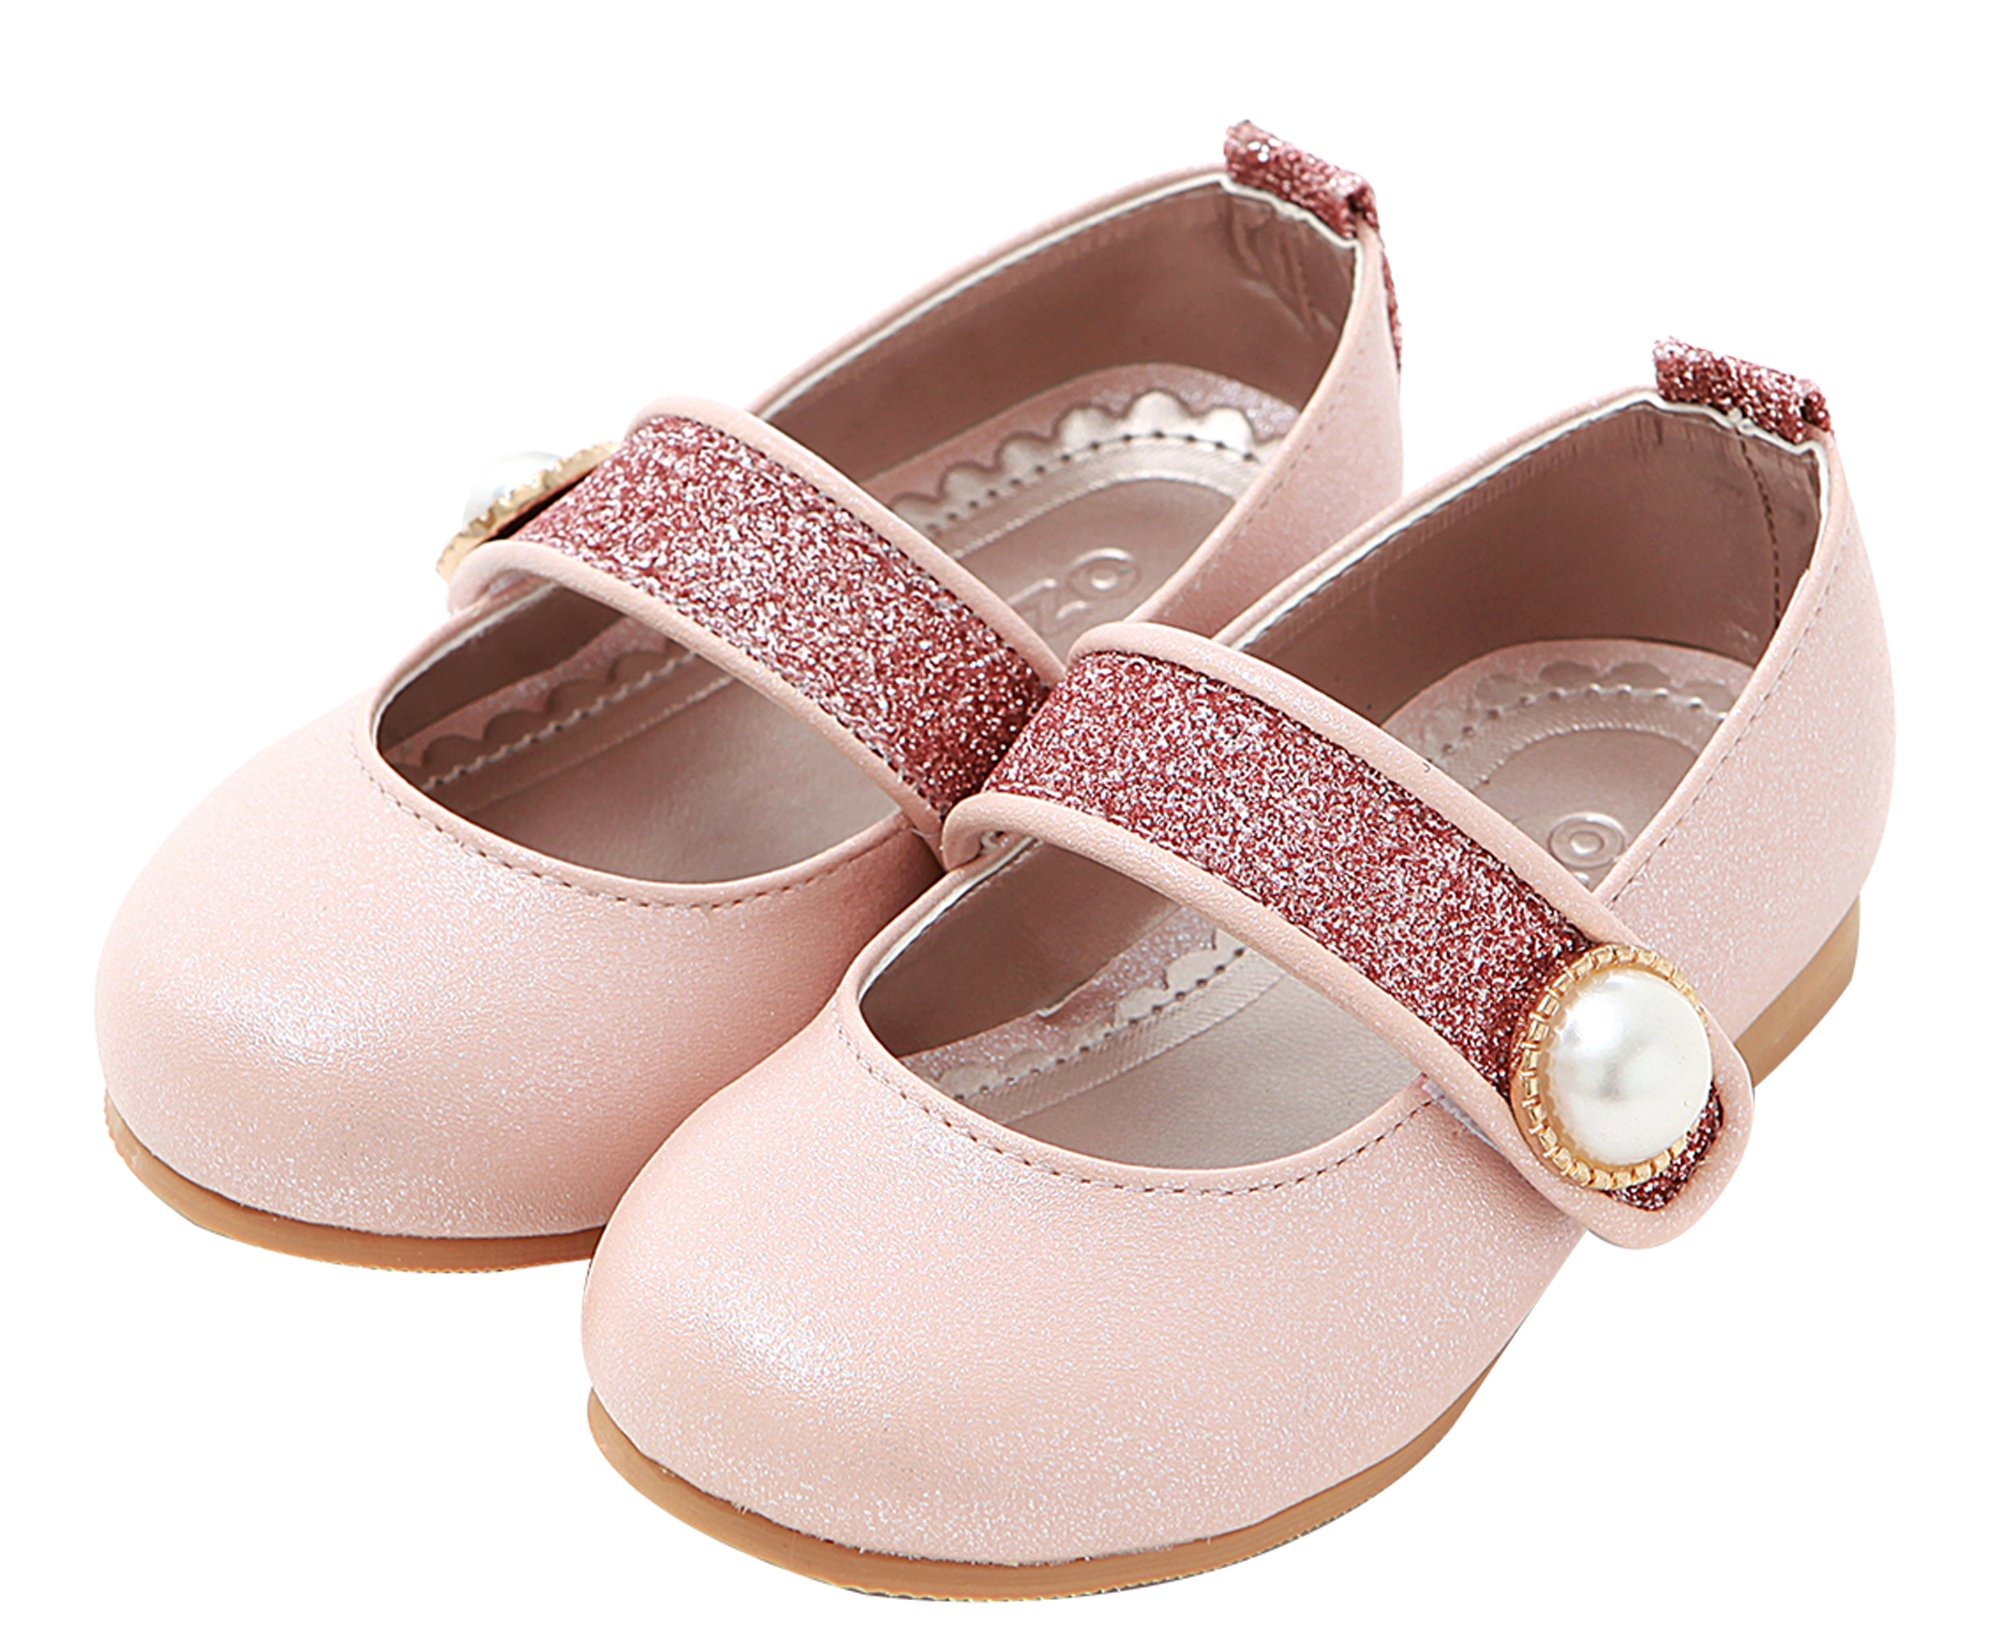 Ozkiz Little Girls Mary Jane Flat Dress Flats Basic Shoes Pointed Pearl PK 13M